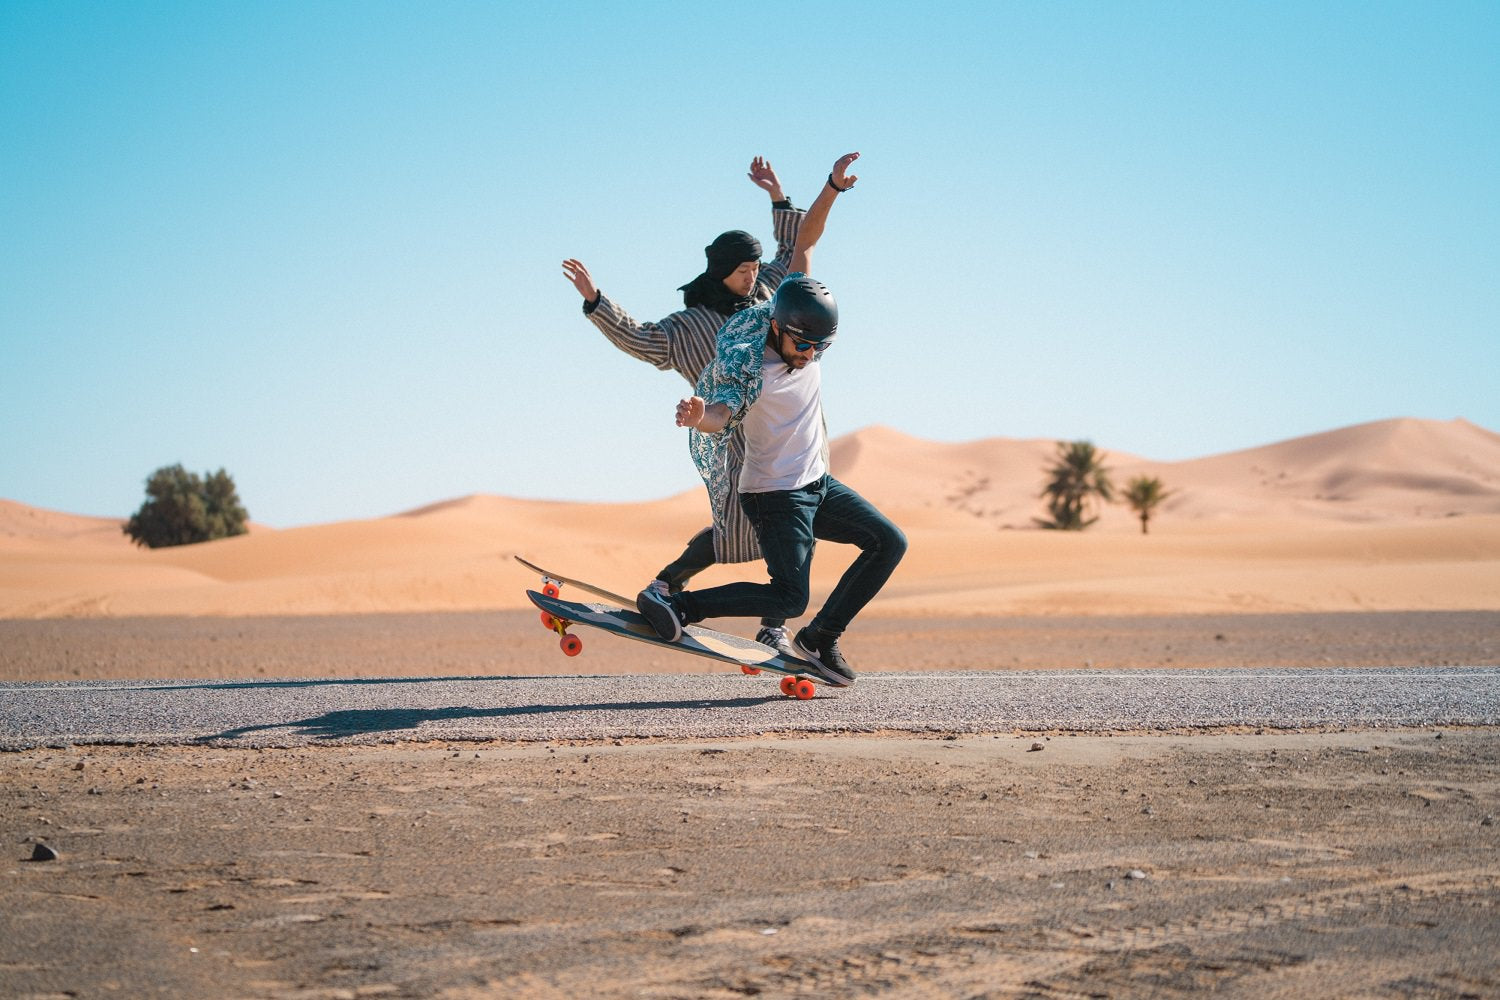 Loaded Tarab Longboard Manual in the Desert